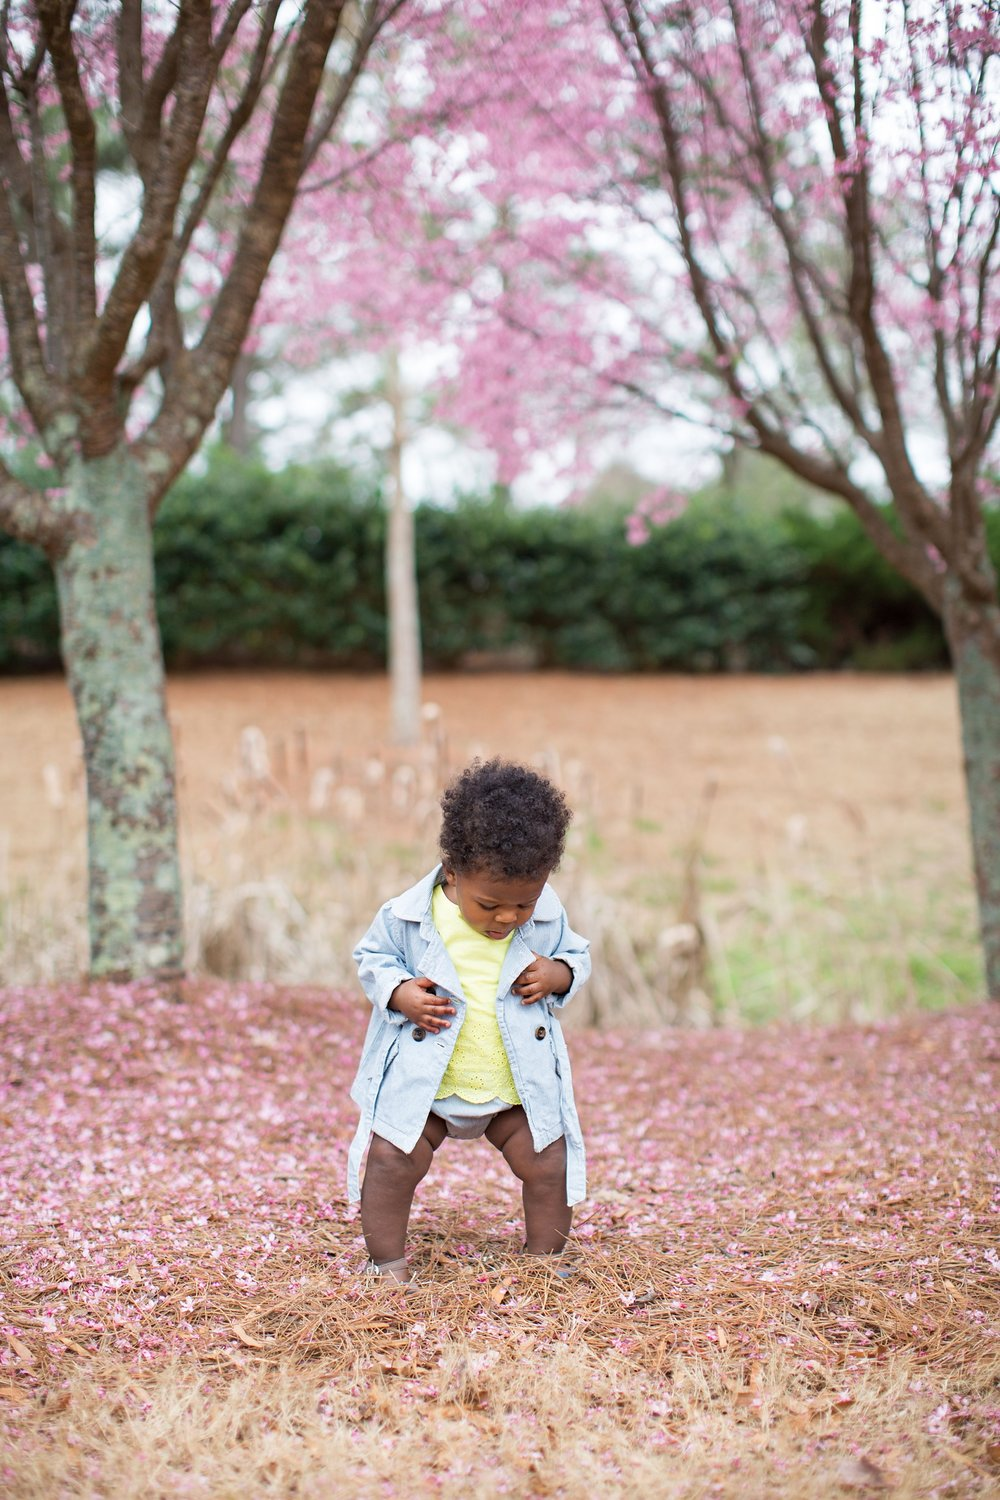 Little girl in field with pink flowers